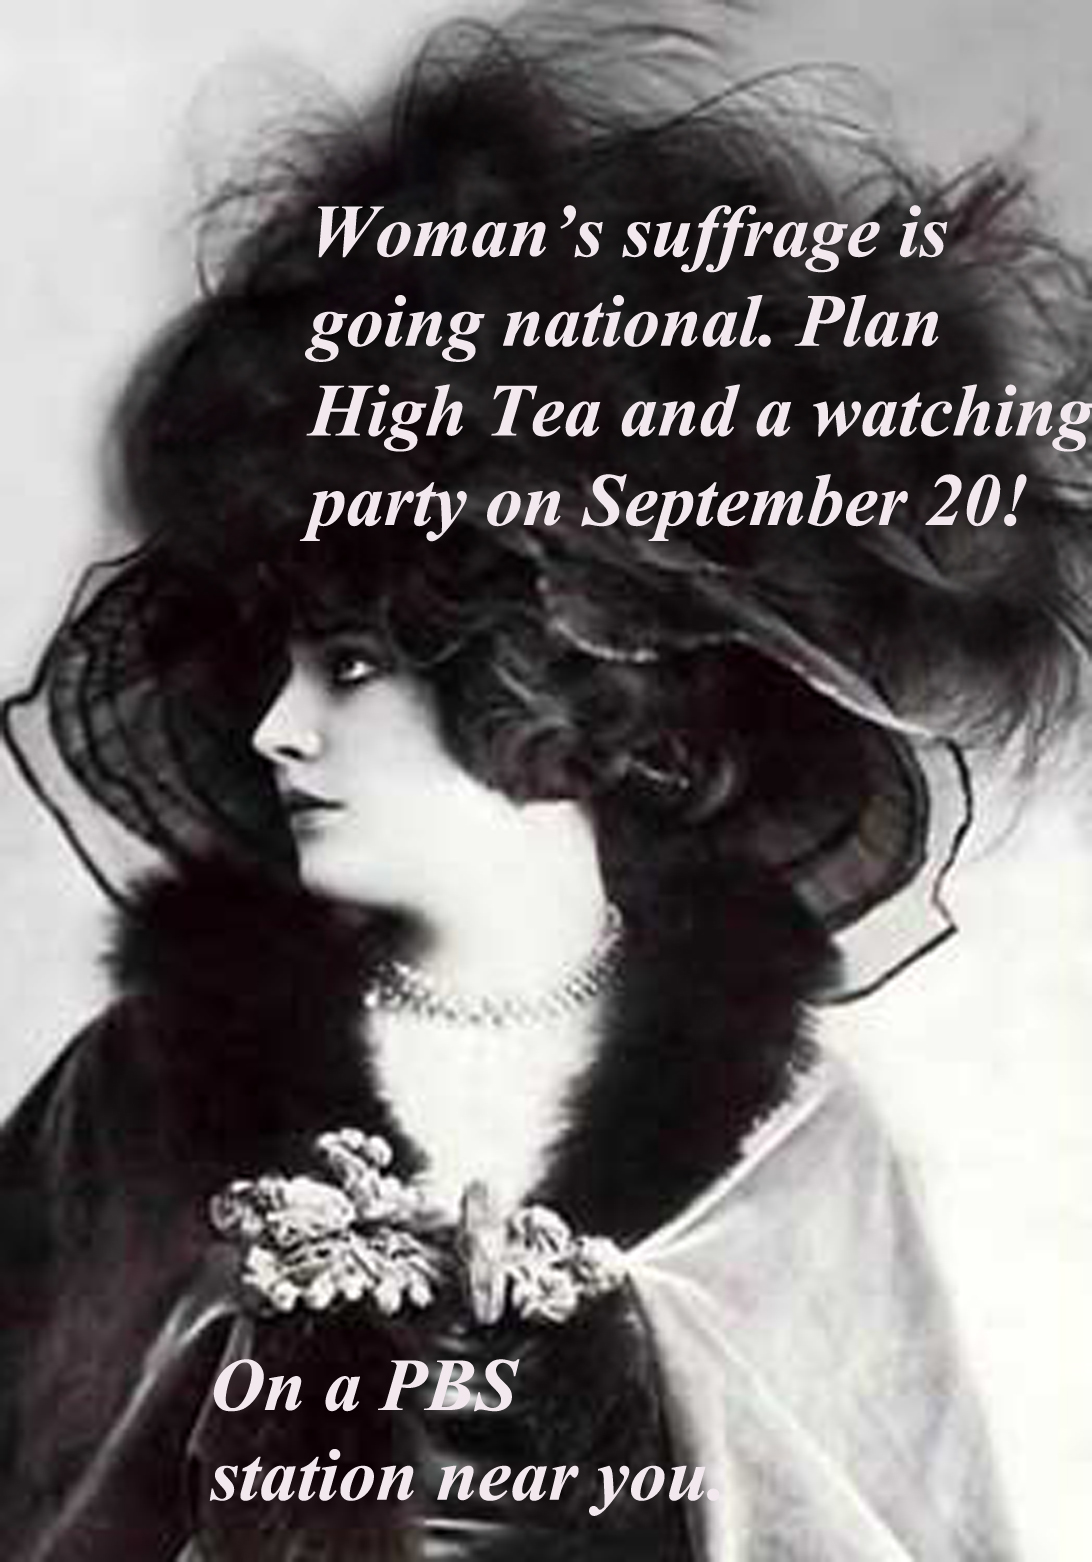 Women's Suffrage Quotes Woman's Suffrage Is Going National  Suffrage Wagon News Channel